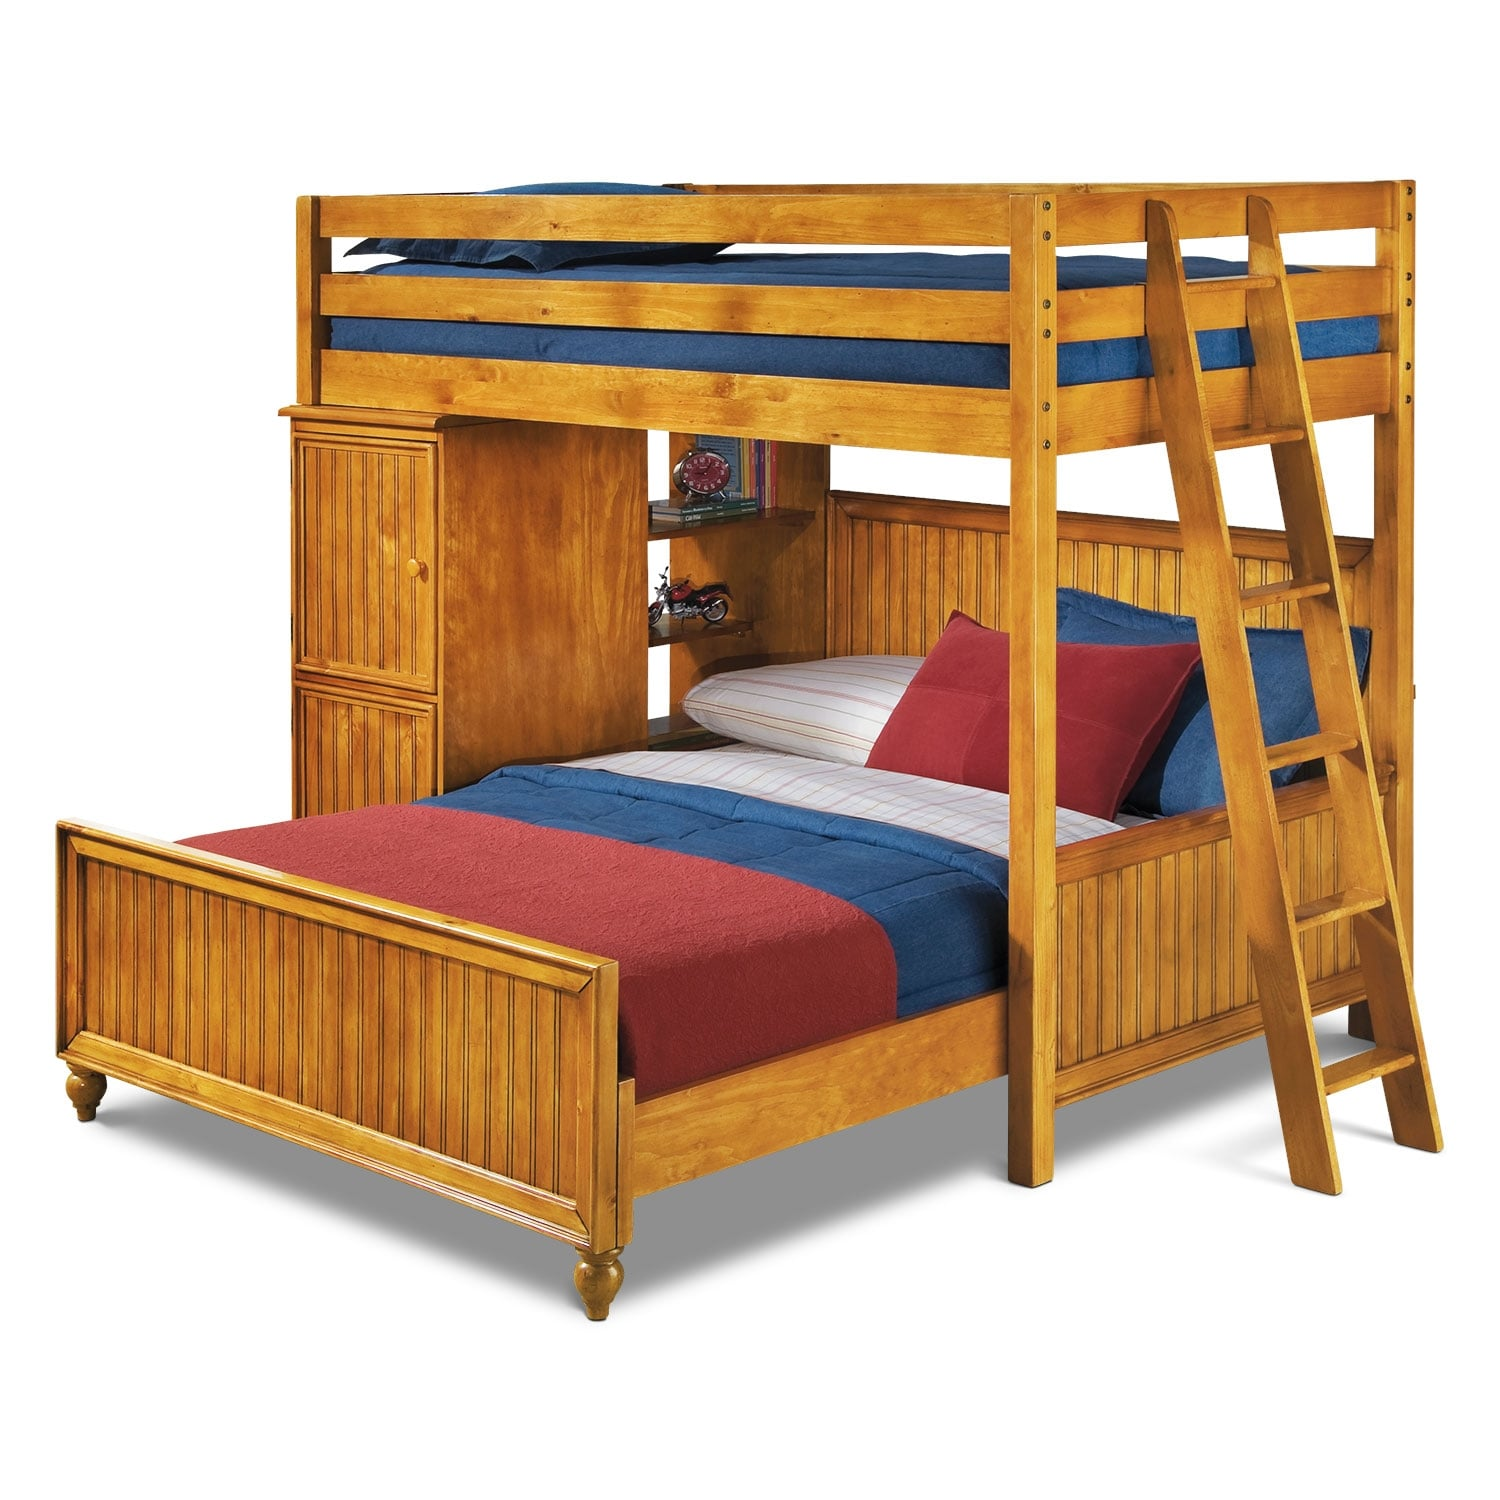 Colorworks Loft Bed with Full Bed - Honey Pine